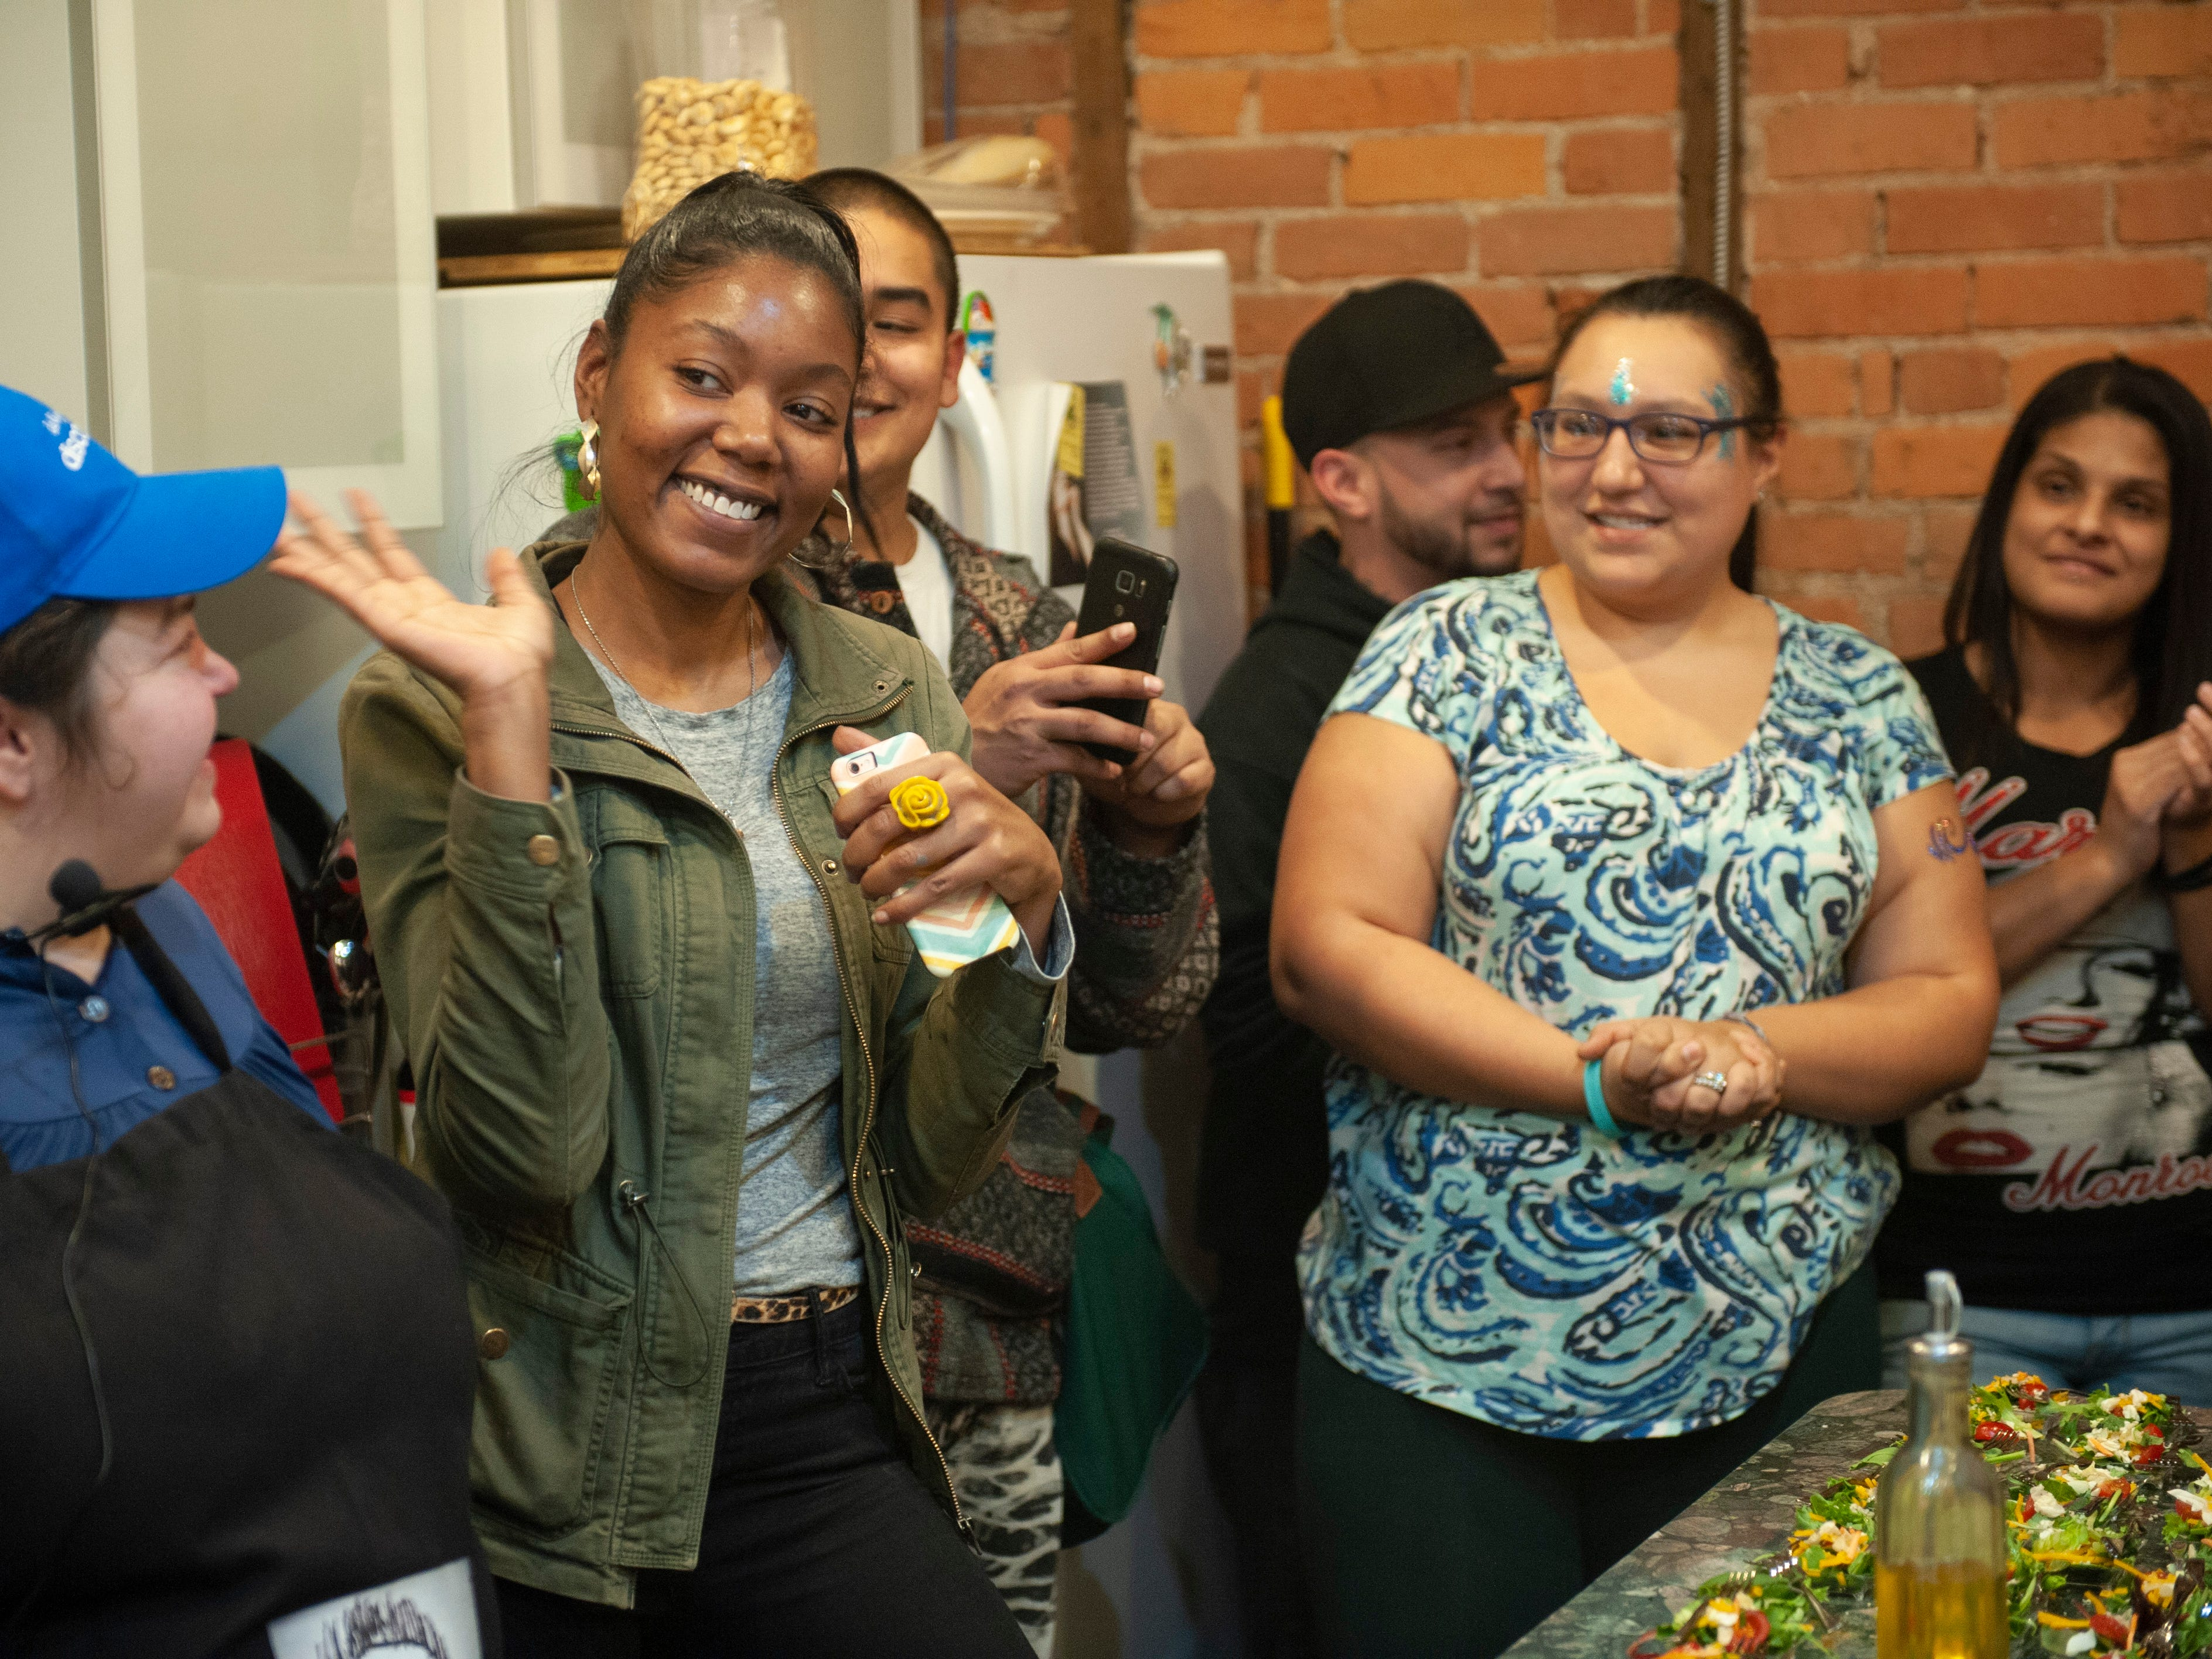 """Cannabis entrepreneur Adrienne Benson of AB Blooms in Ypsilanti waves to party guests as she is introduced at the beginning of """"The Art of Cannabis"""" tasting and art exhibition."""